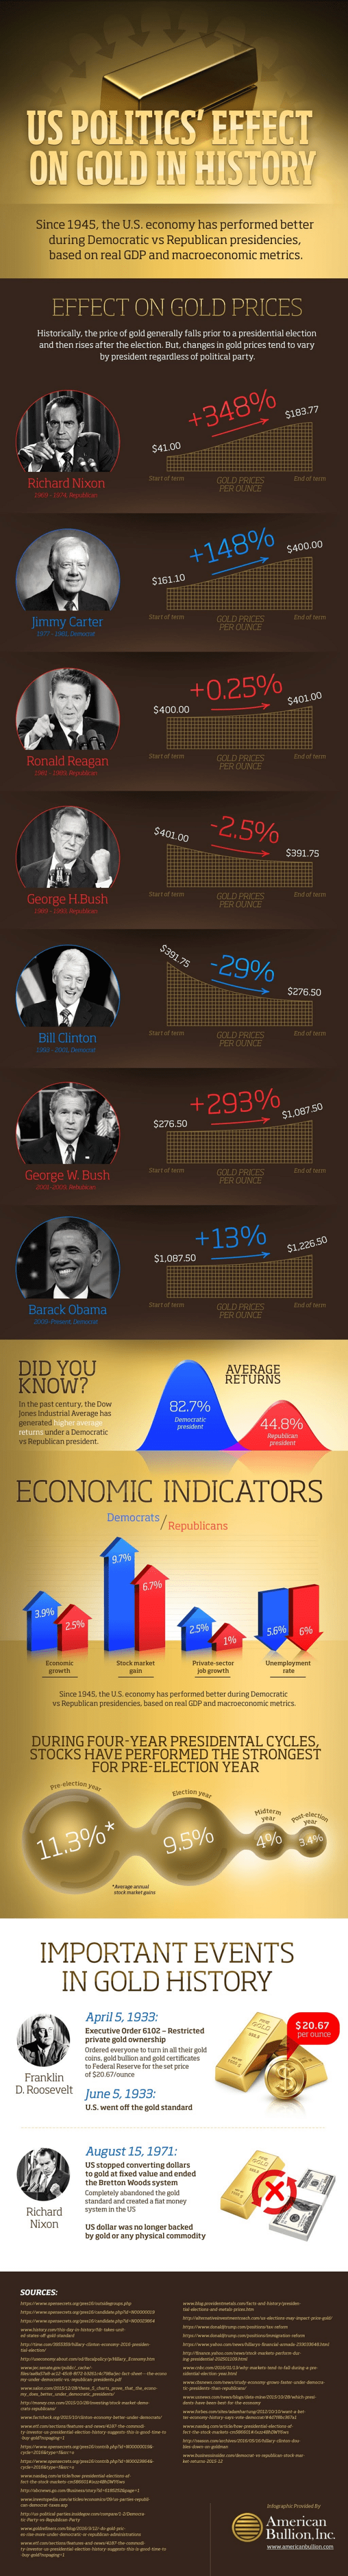 U.S. Politic's Effect on Gold in History